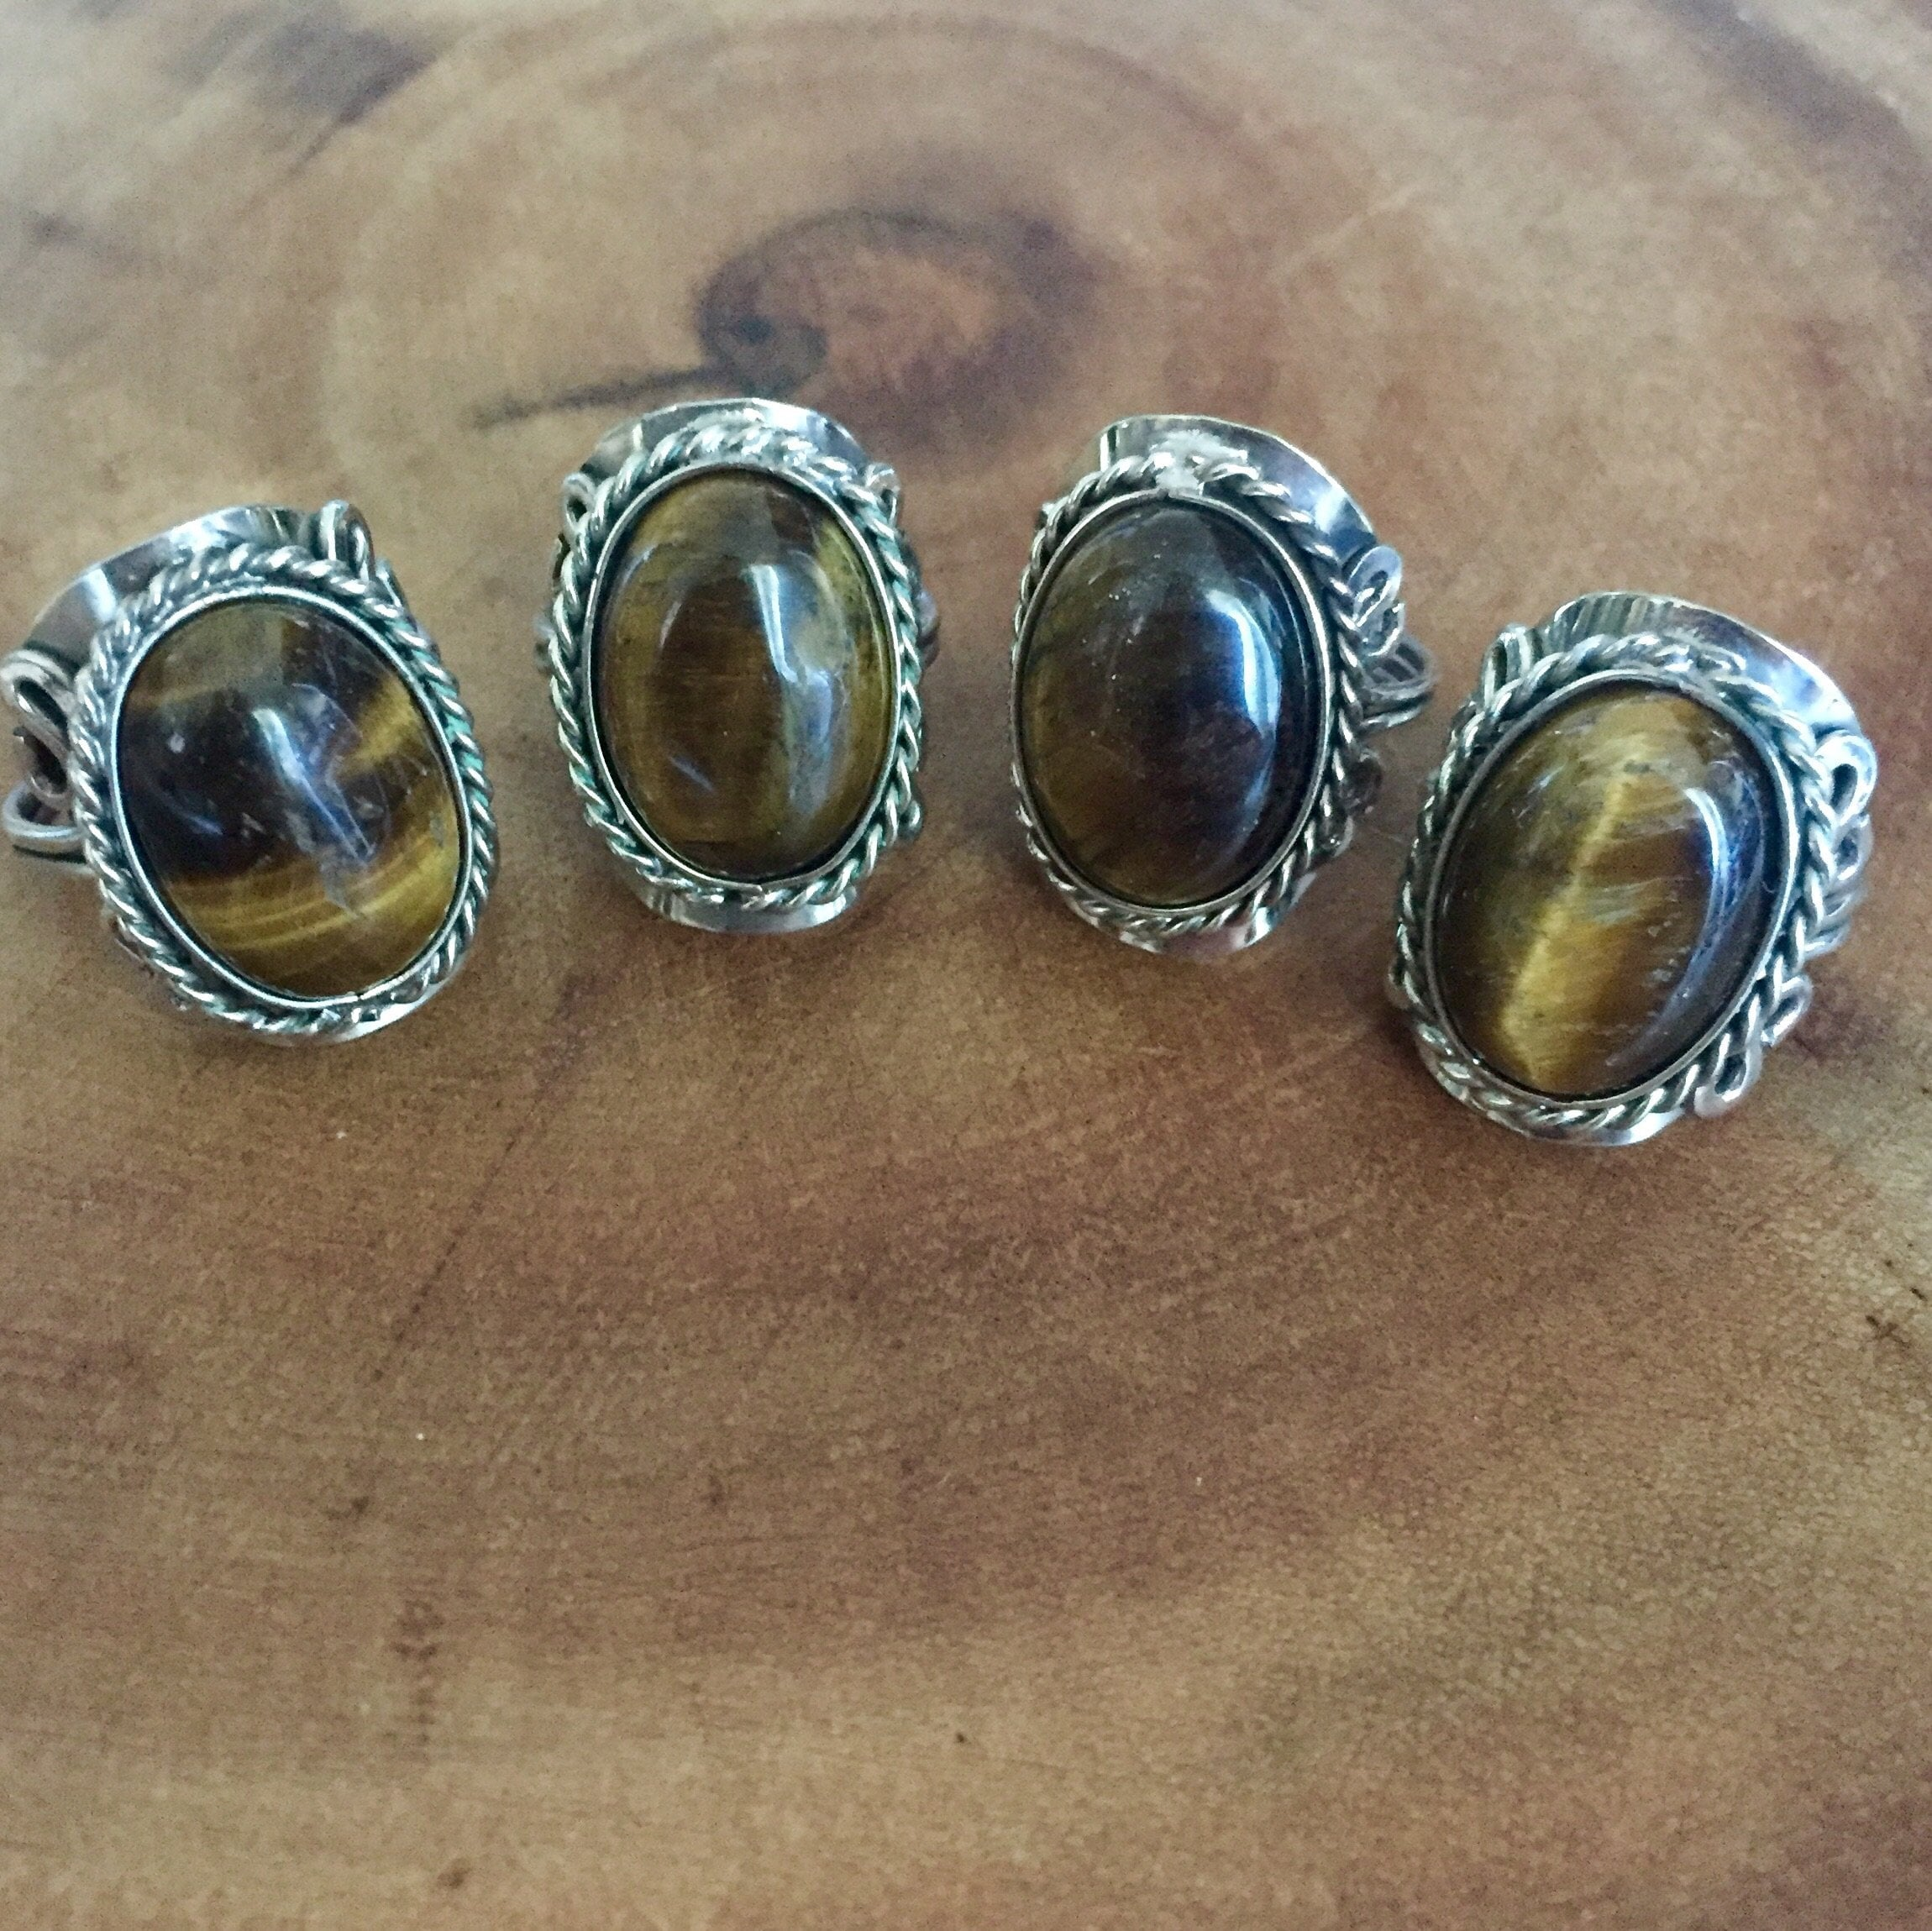 madewell in normal jewelry tigers cuff bracelet brown lyst rings product tiger s chestnut gallery eye